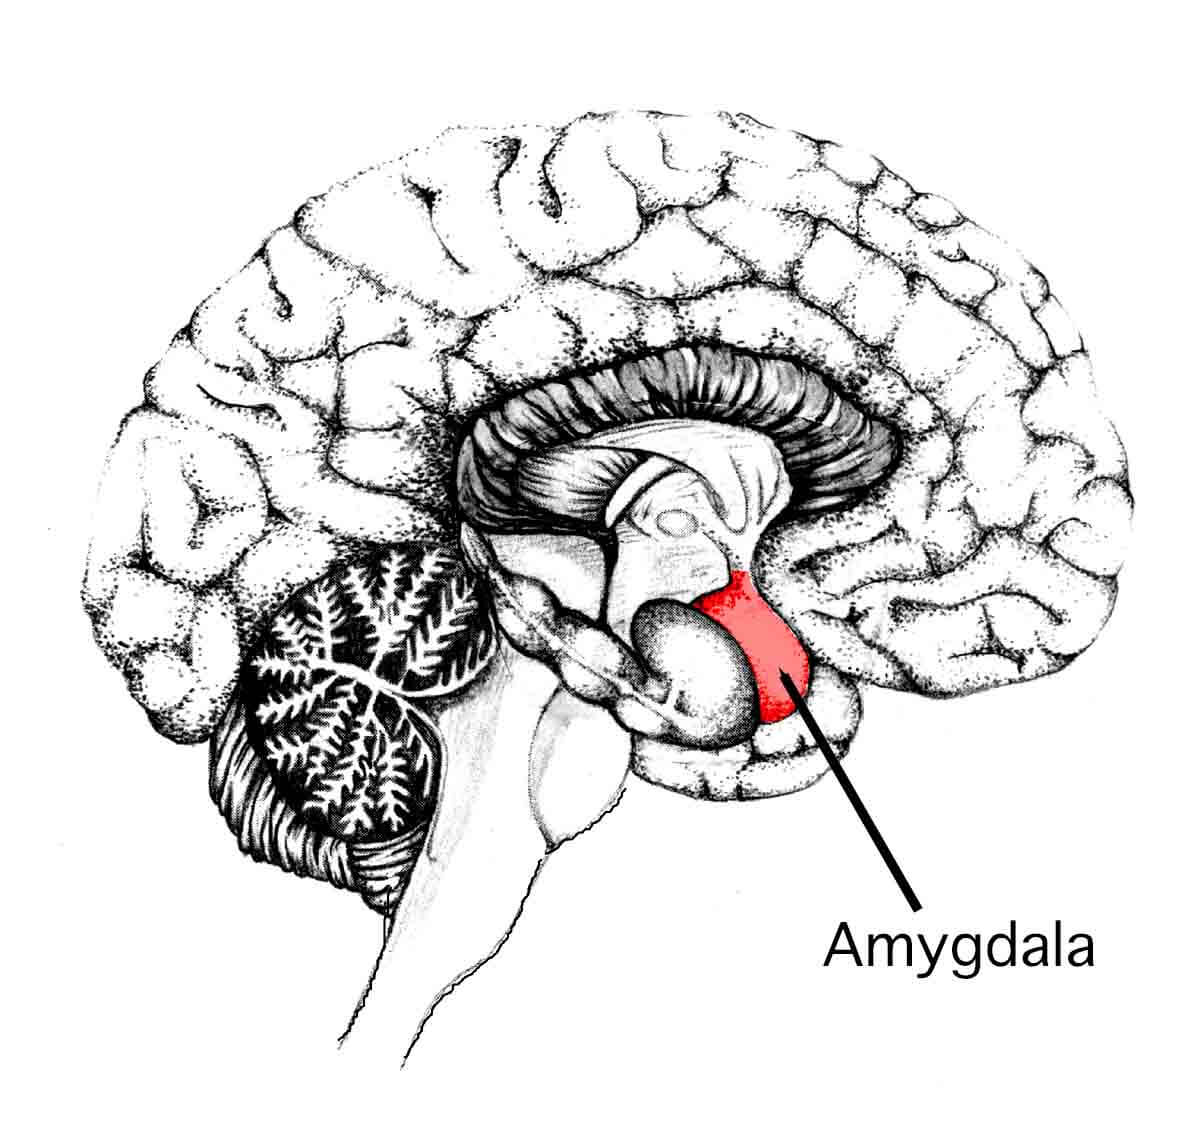 The amygdala, initiator of the fight-or-flight response in the human brain